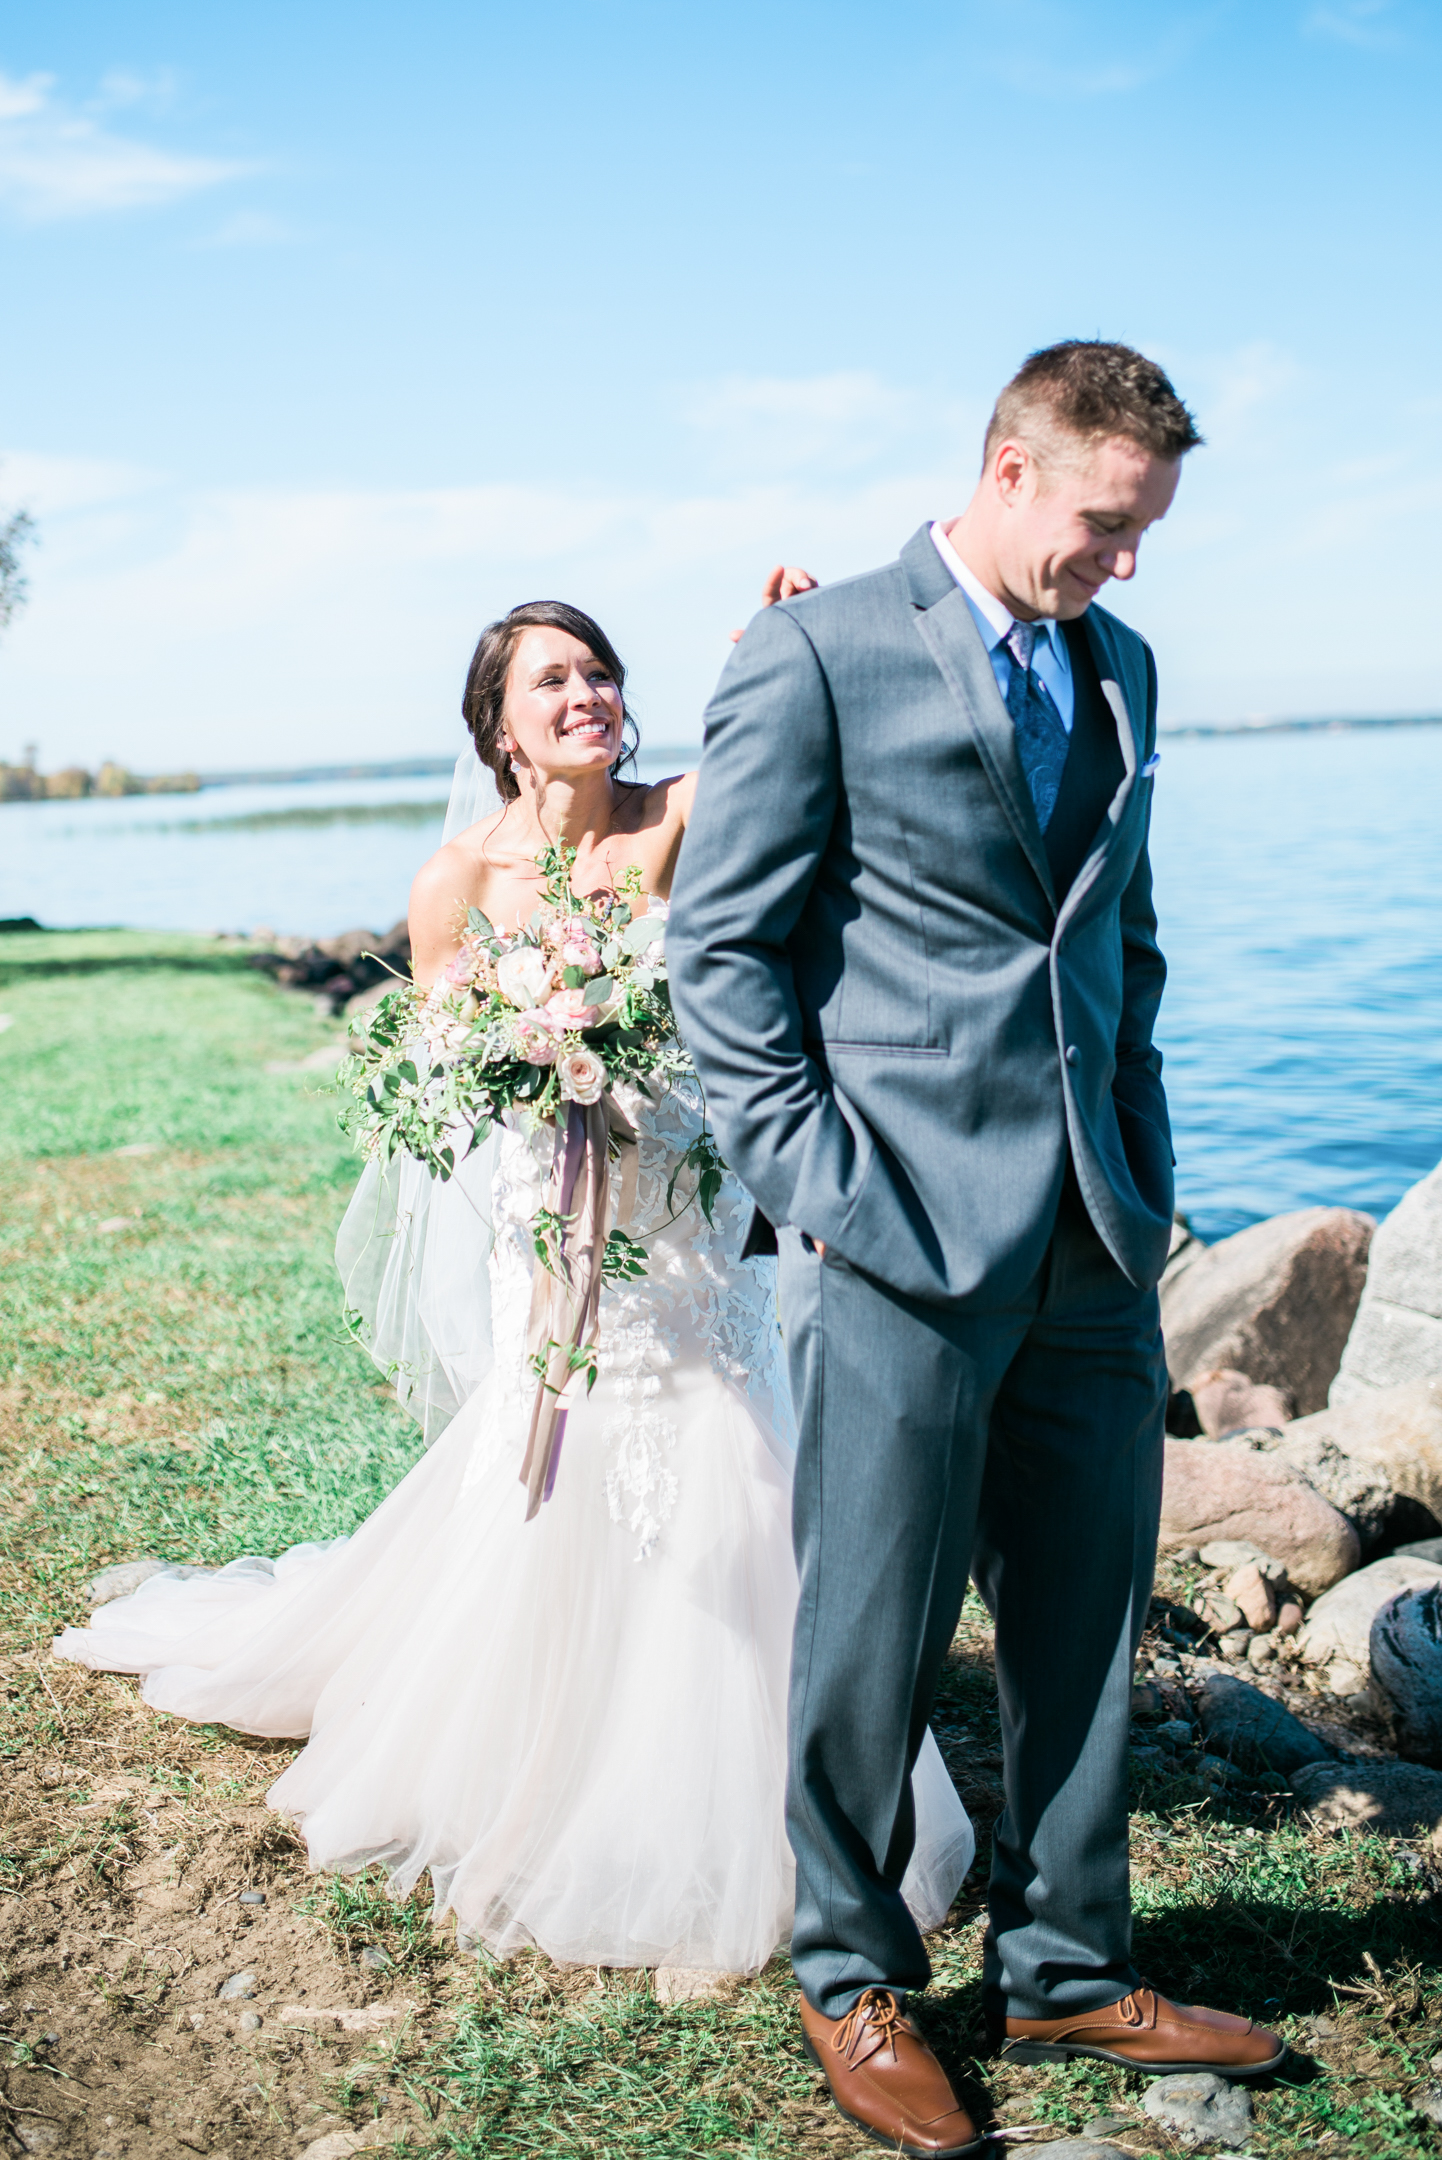 the bee's knees floral design decor minneapolis wedding flowers florist bridal florals brainerd lakes minneapols st paul twin cities st cloud duluth mankato mn florist whimsical florals wedding in the country barn wedding blush and greenery mille lacs lake